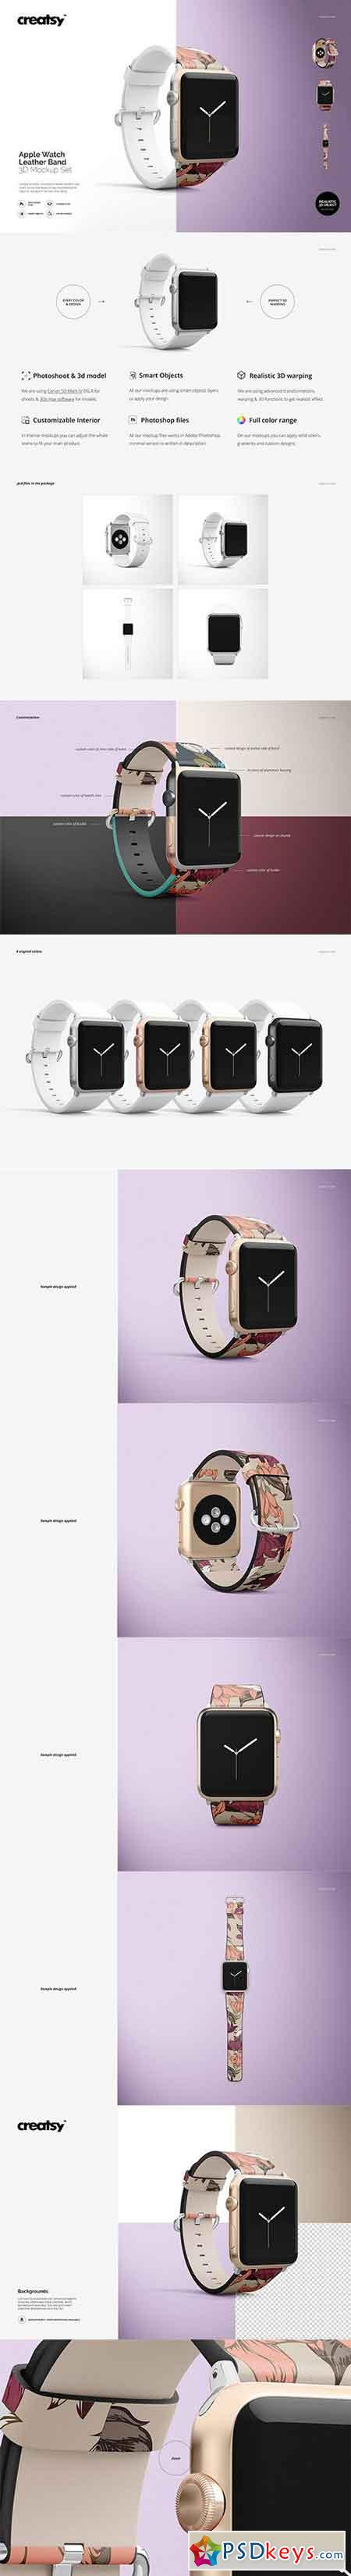 Apple Watch Leather Band Mockup Set 2737923